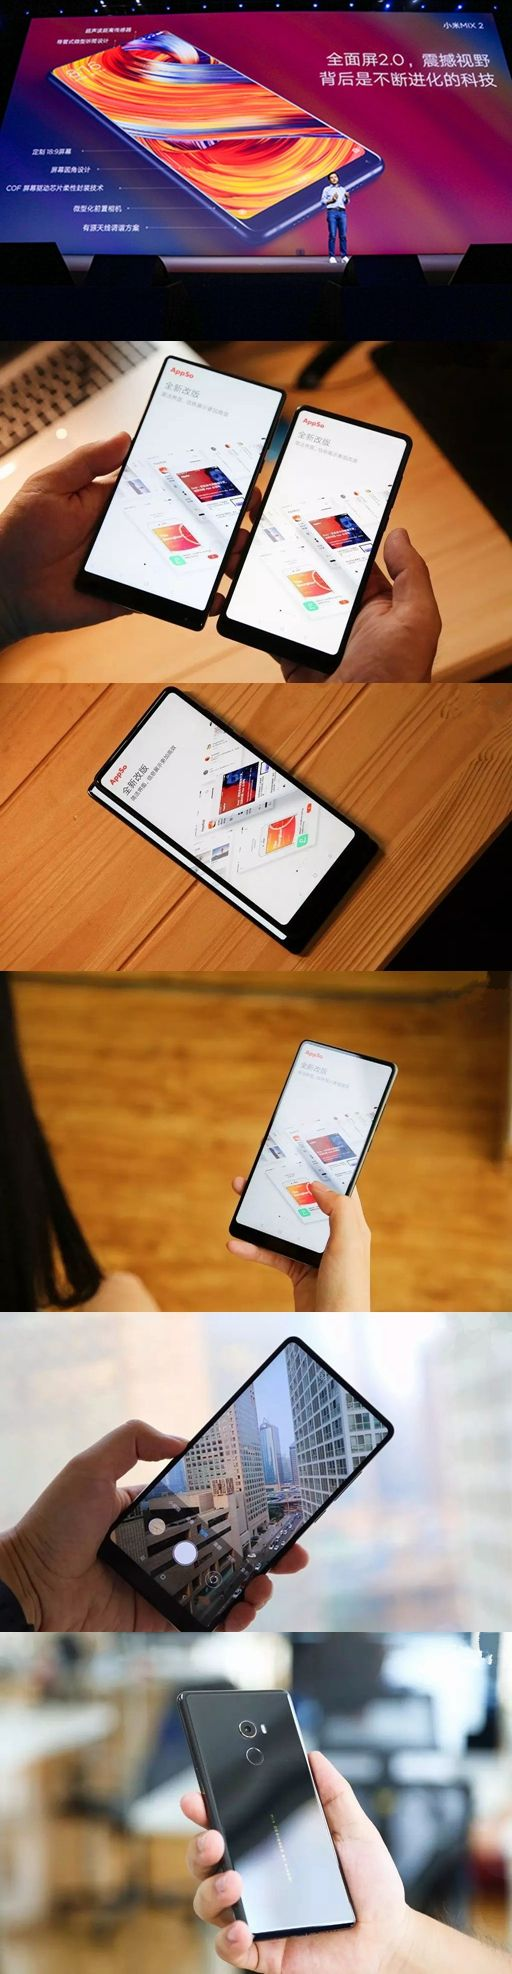 """Chinese tech company #Xiaomi launched an updated version of its """"concept smartphone"""" Mi Mix, the Mi #Mix 2, on Monday, one earlier than the planned release date of #iPhone 8. The Mi Mix 2, with a screen aspect ratio of 18:9 like its predecessor, runs on a #Snapdragon 835 processor and has a 5.99-inch screen, whose display looks almost as large as the 5.55-inch iPhone 7 plus screen."""